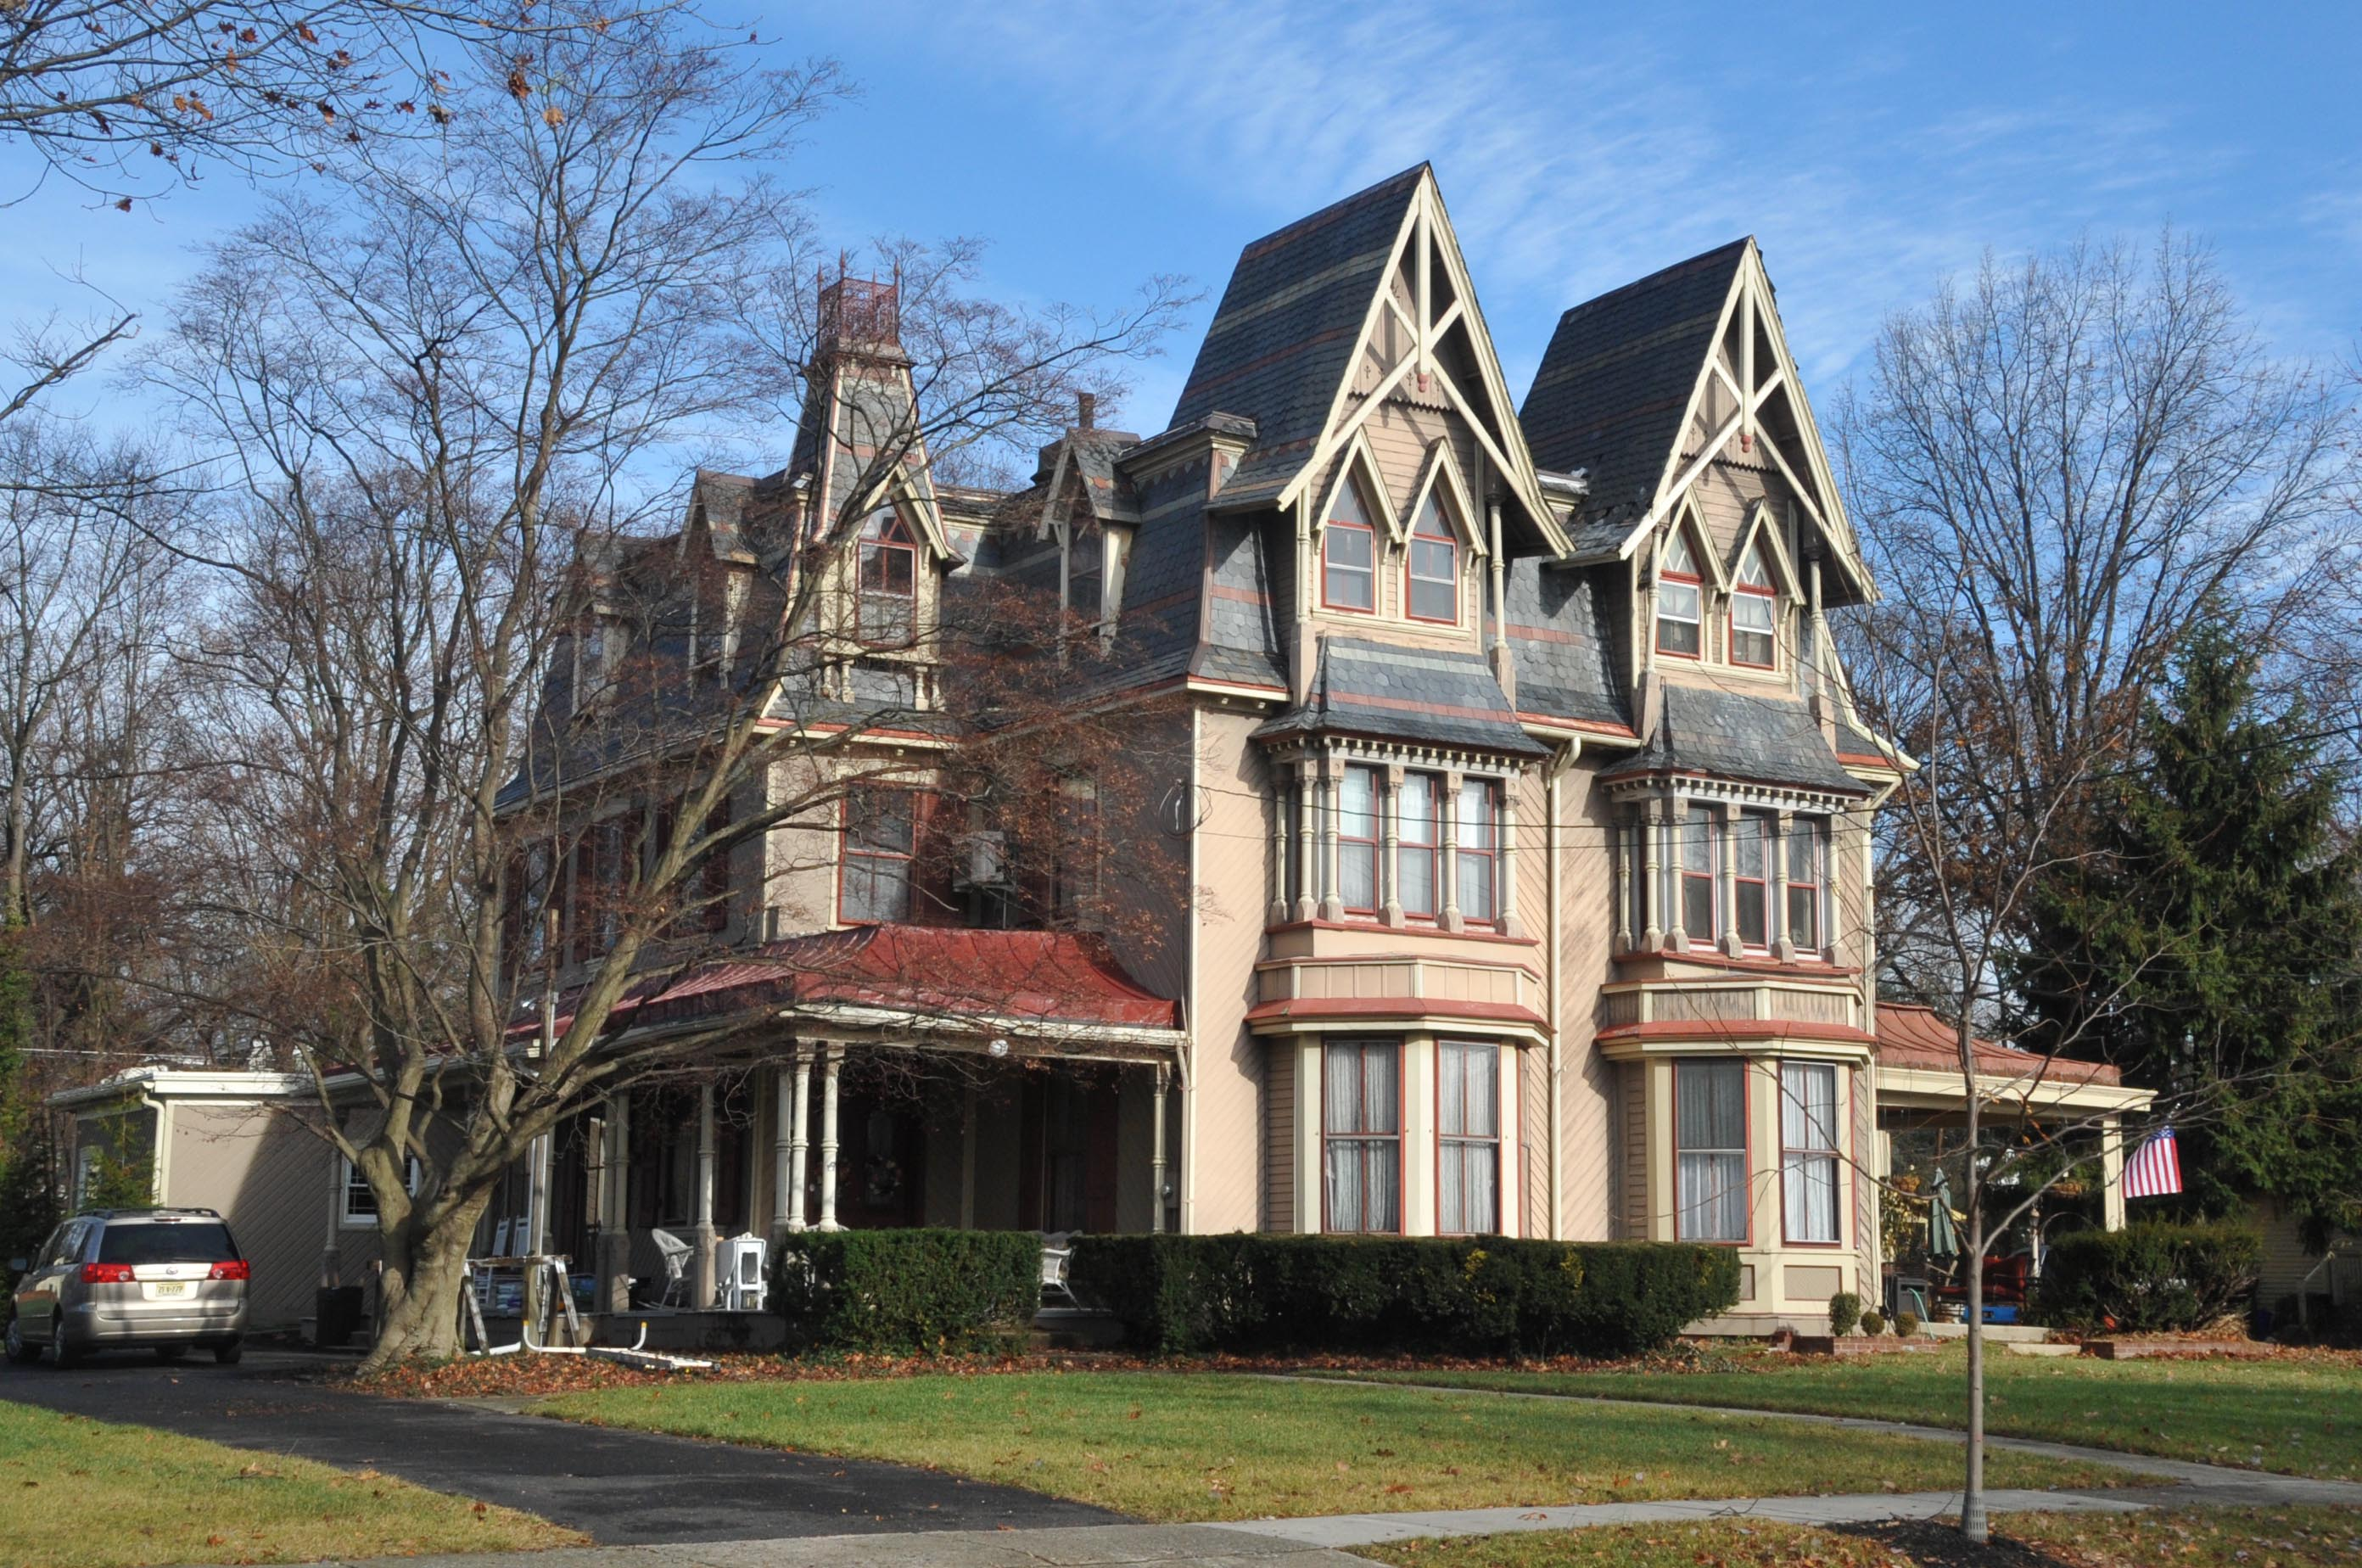 wonderful building a house in nj #7: File:CENTENNIAL HOUSE, MERCHANTVILLE, CAMDEN COUNTY, NJ.jpg